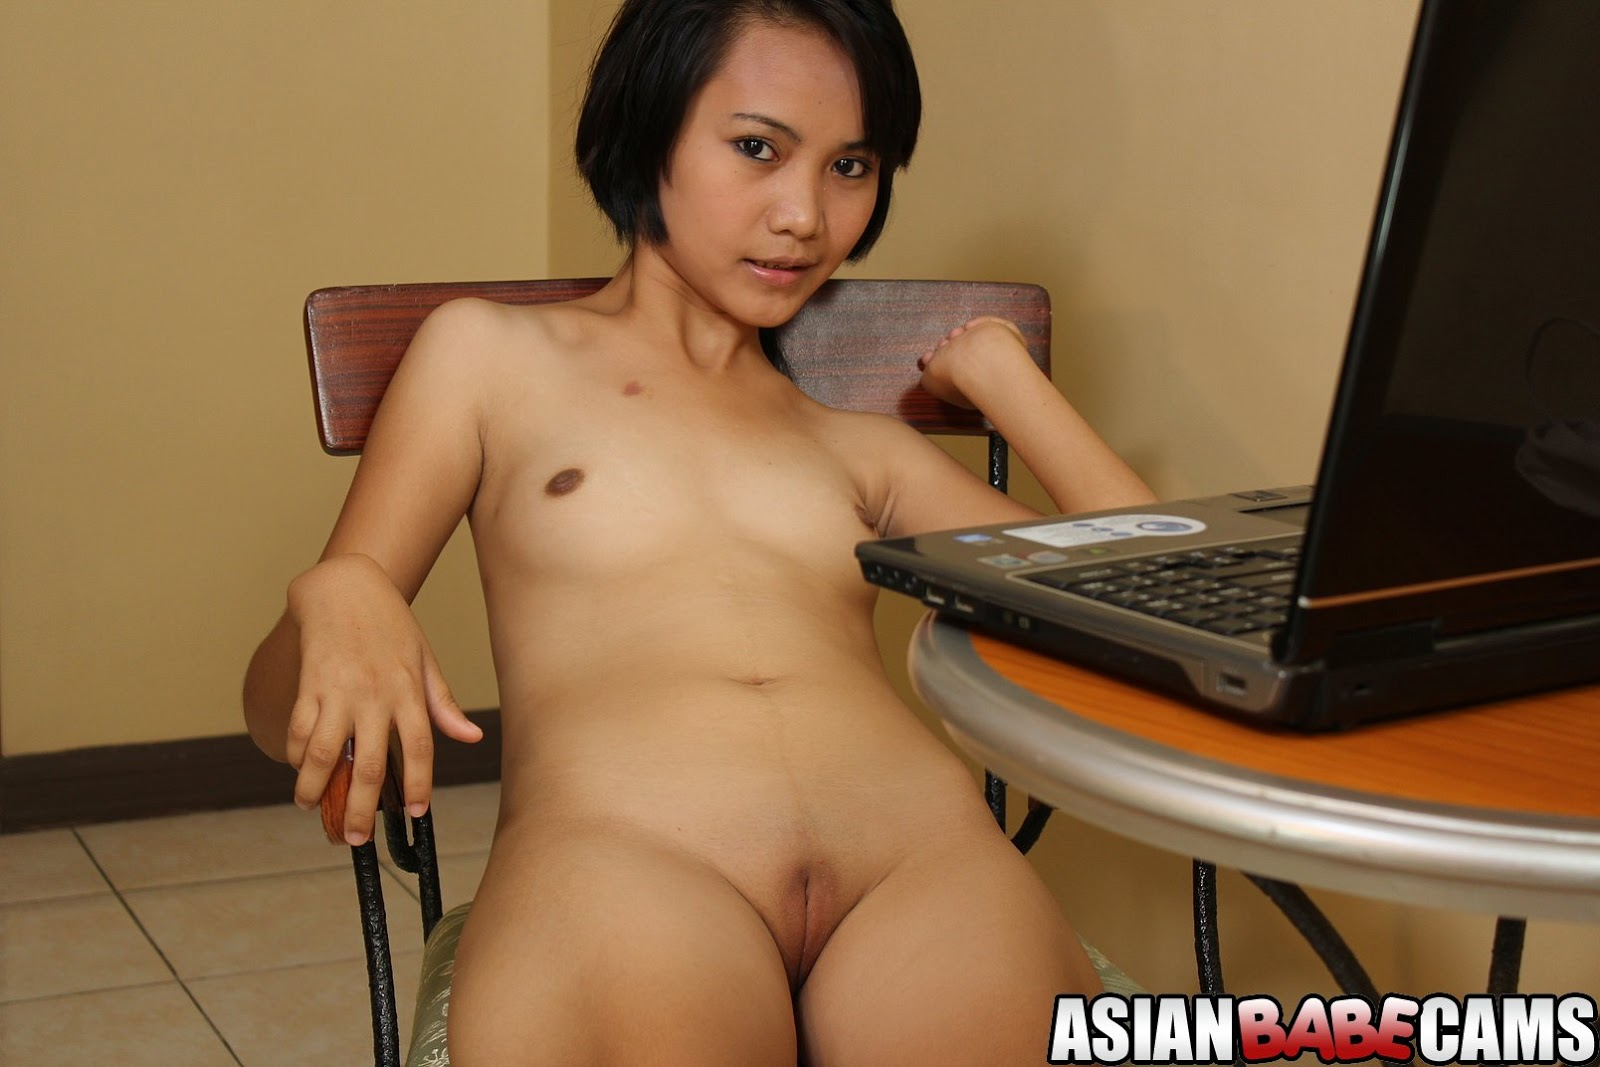 Apologise, Pattaya sex girl nude fuck remarkable